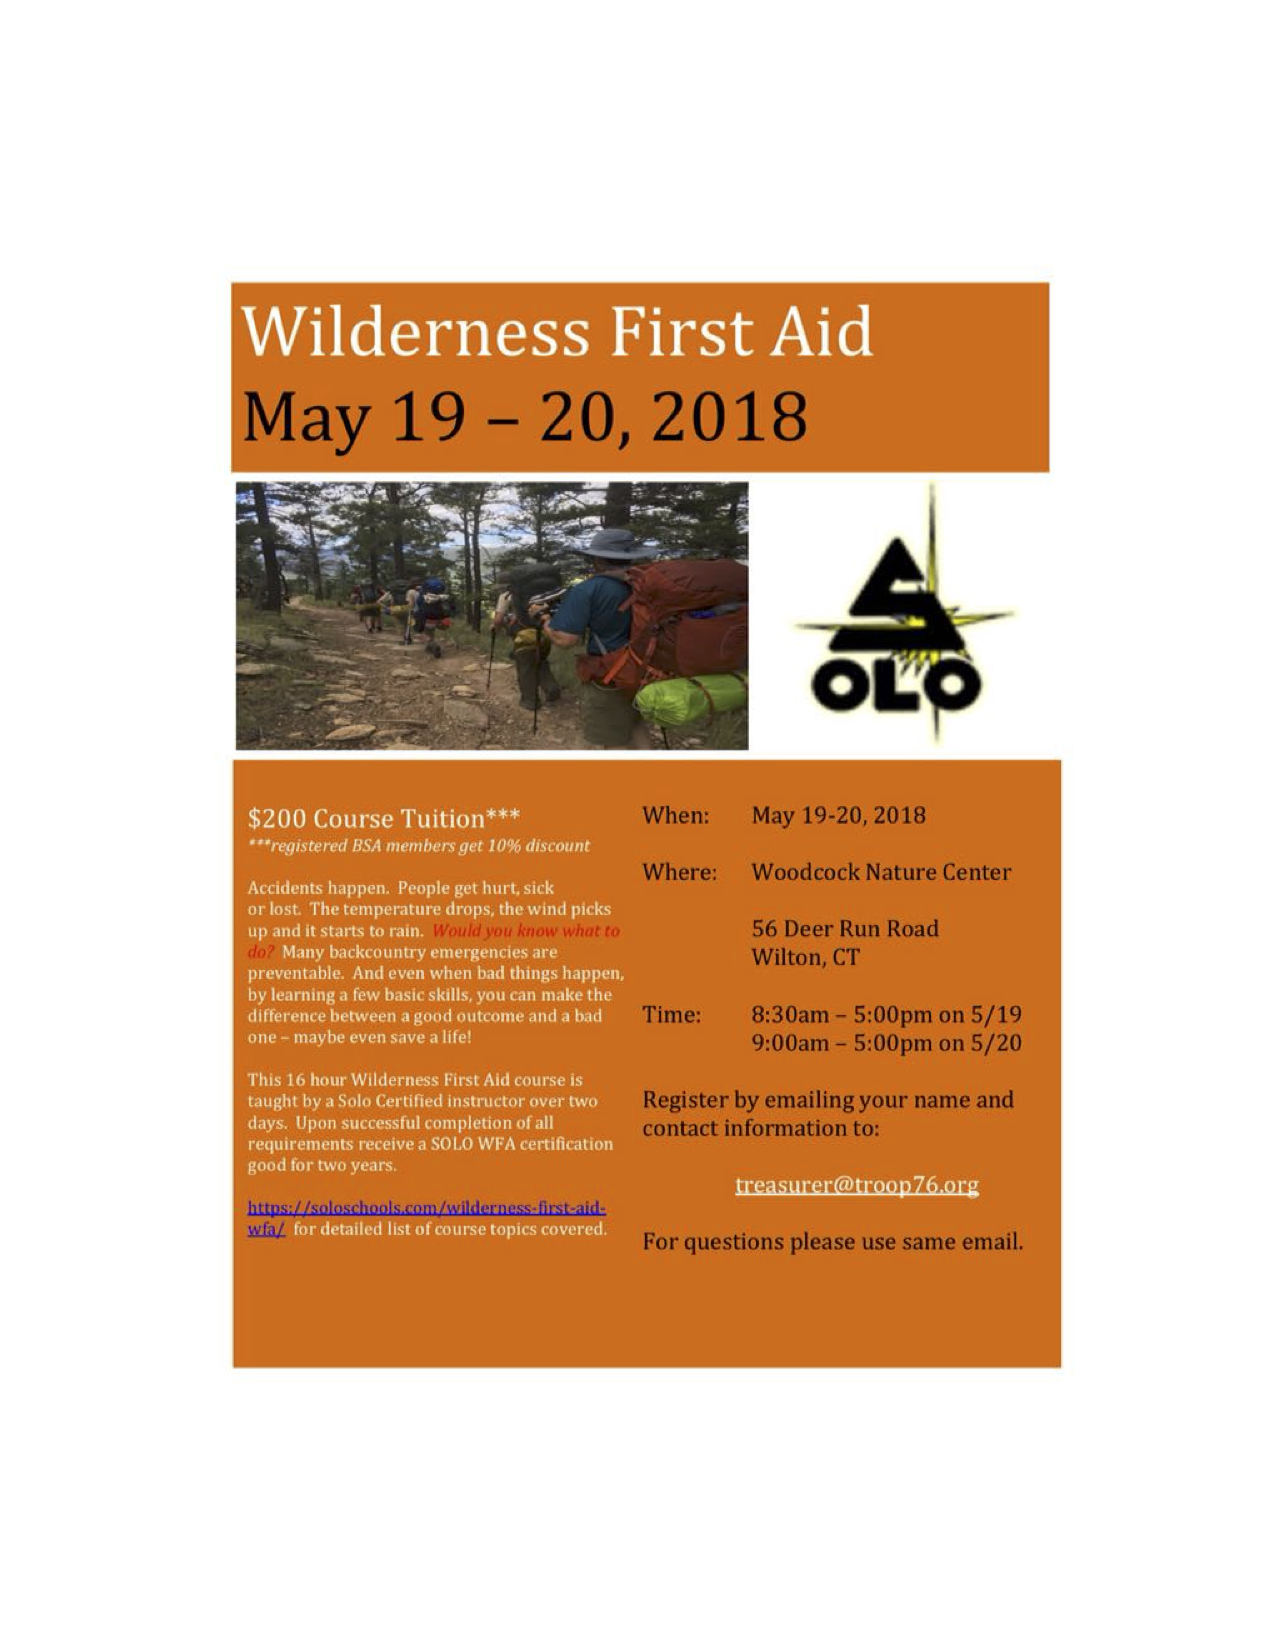 Wilderness First Aid Training May 19 20 At Woodcock Nature Center